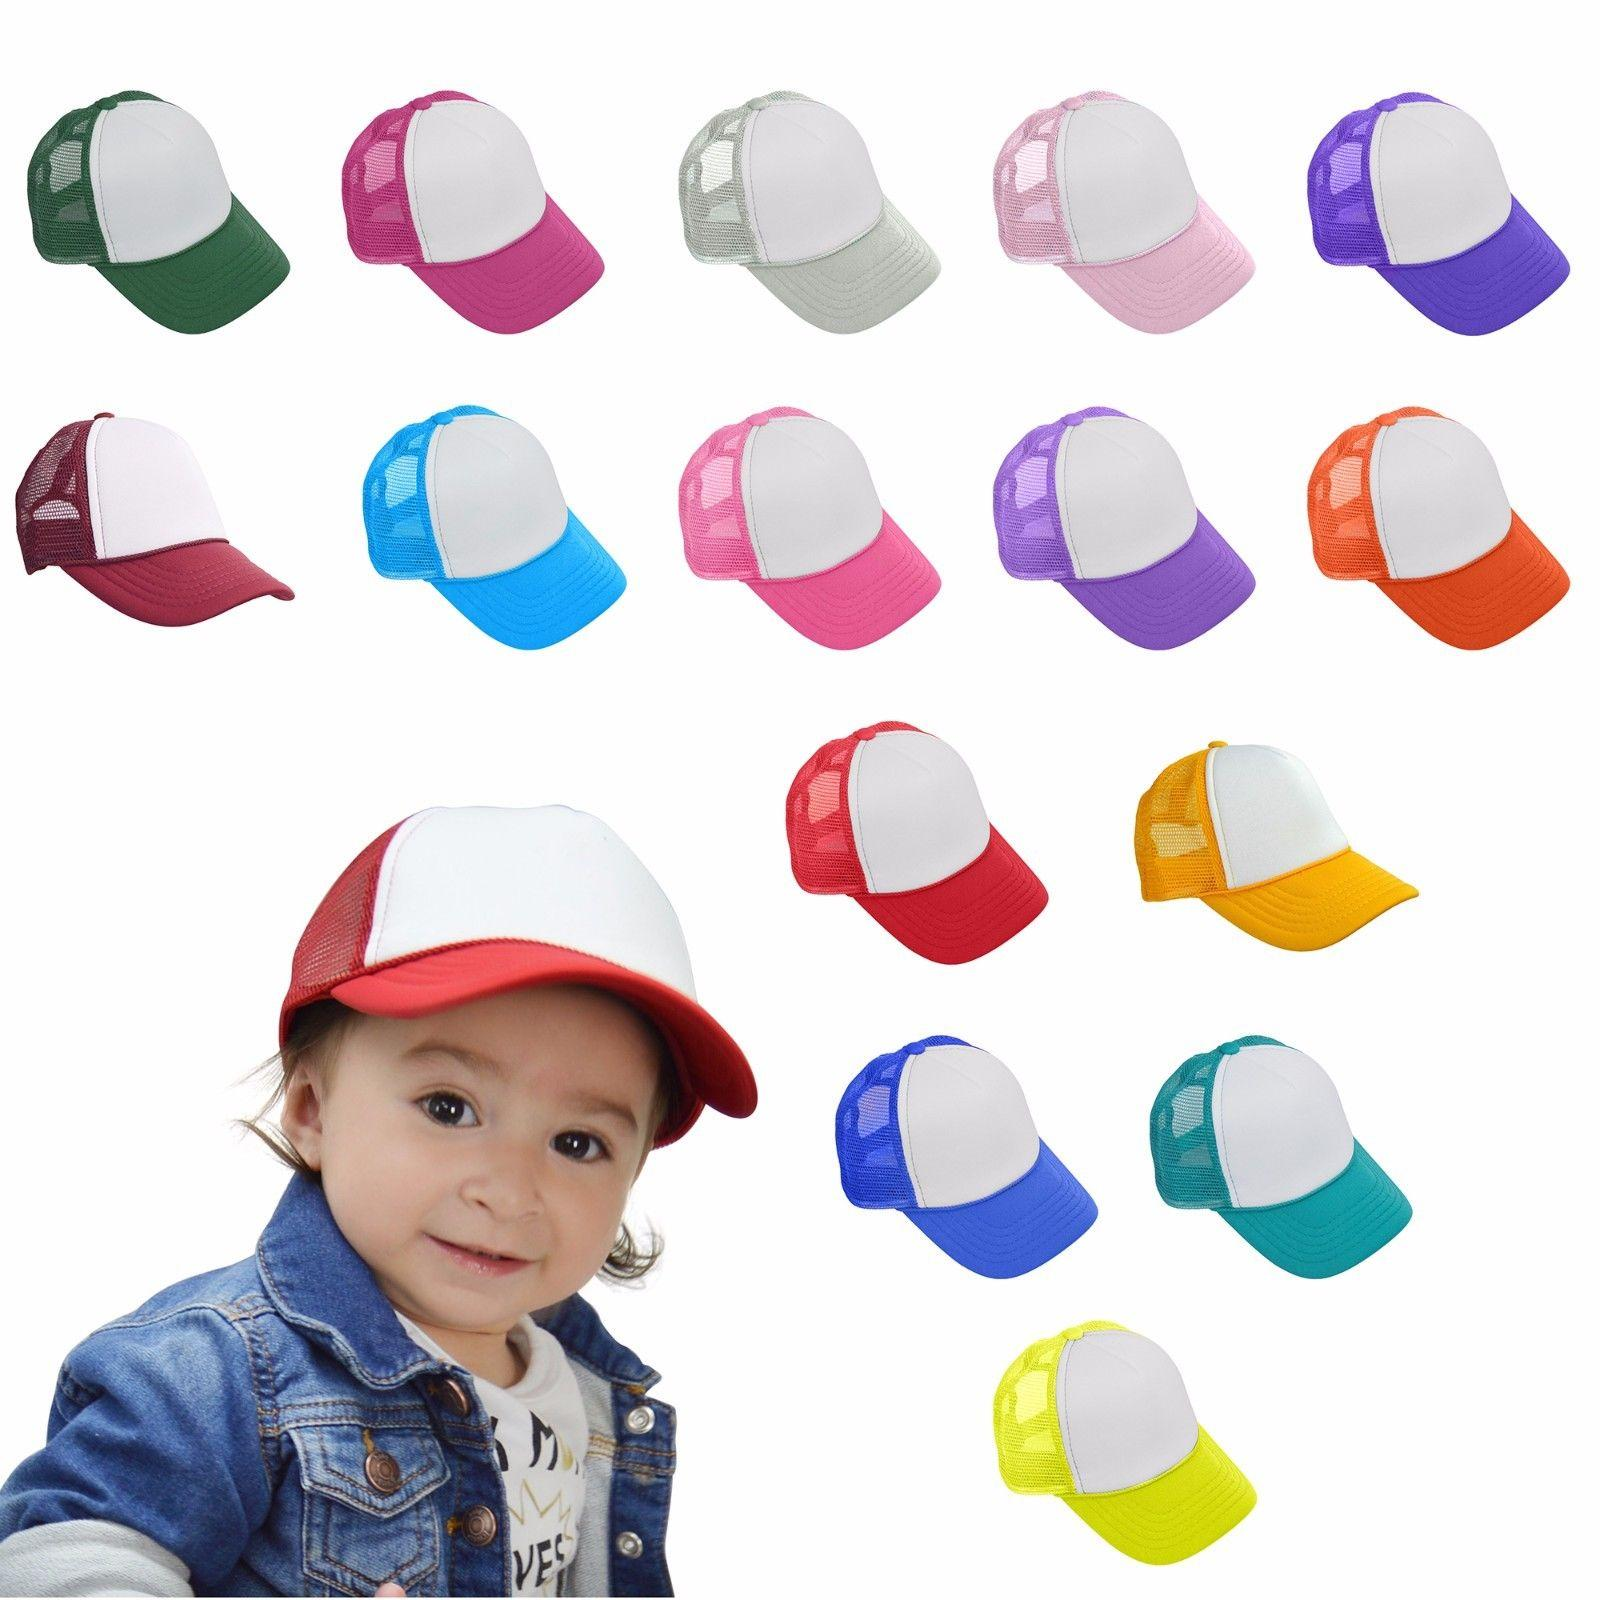 083a16c0 15 Styles Kids Trucker Cap Adult Mesh Caps Blank Trucker Hats Snapback Hats  Girls Boys Toddler Cap GGA326 Compton Cap Baseball Caps For Women From  B2b_baby, ...